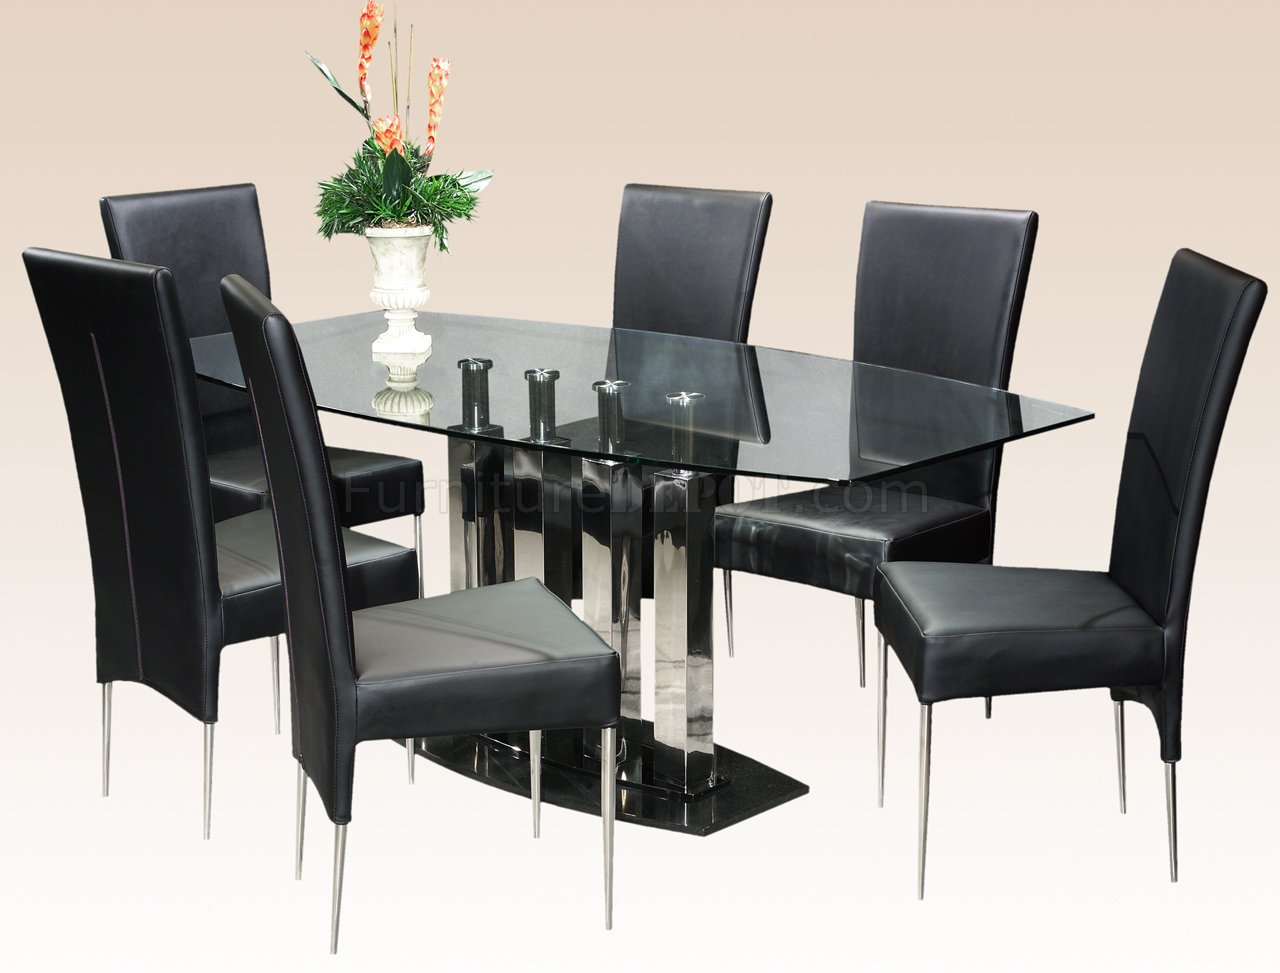 clear glass top steel base modern dining table woptional chairs p modern kitchen table sets